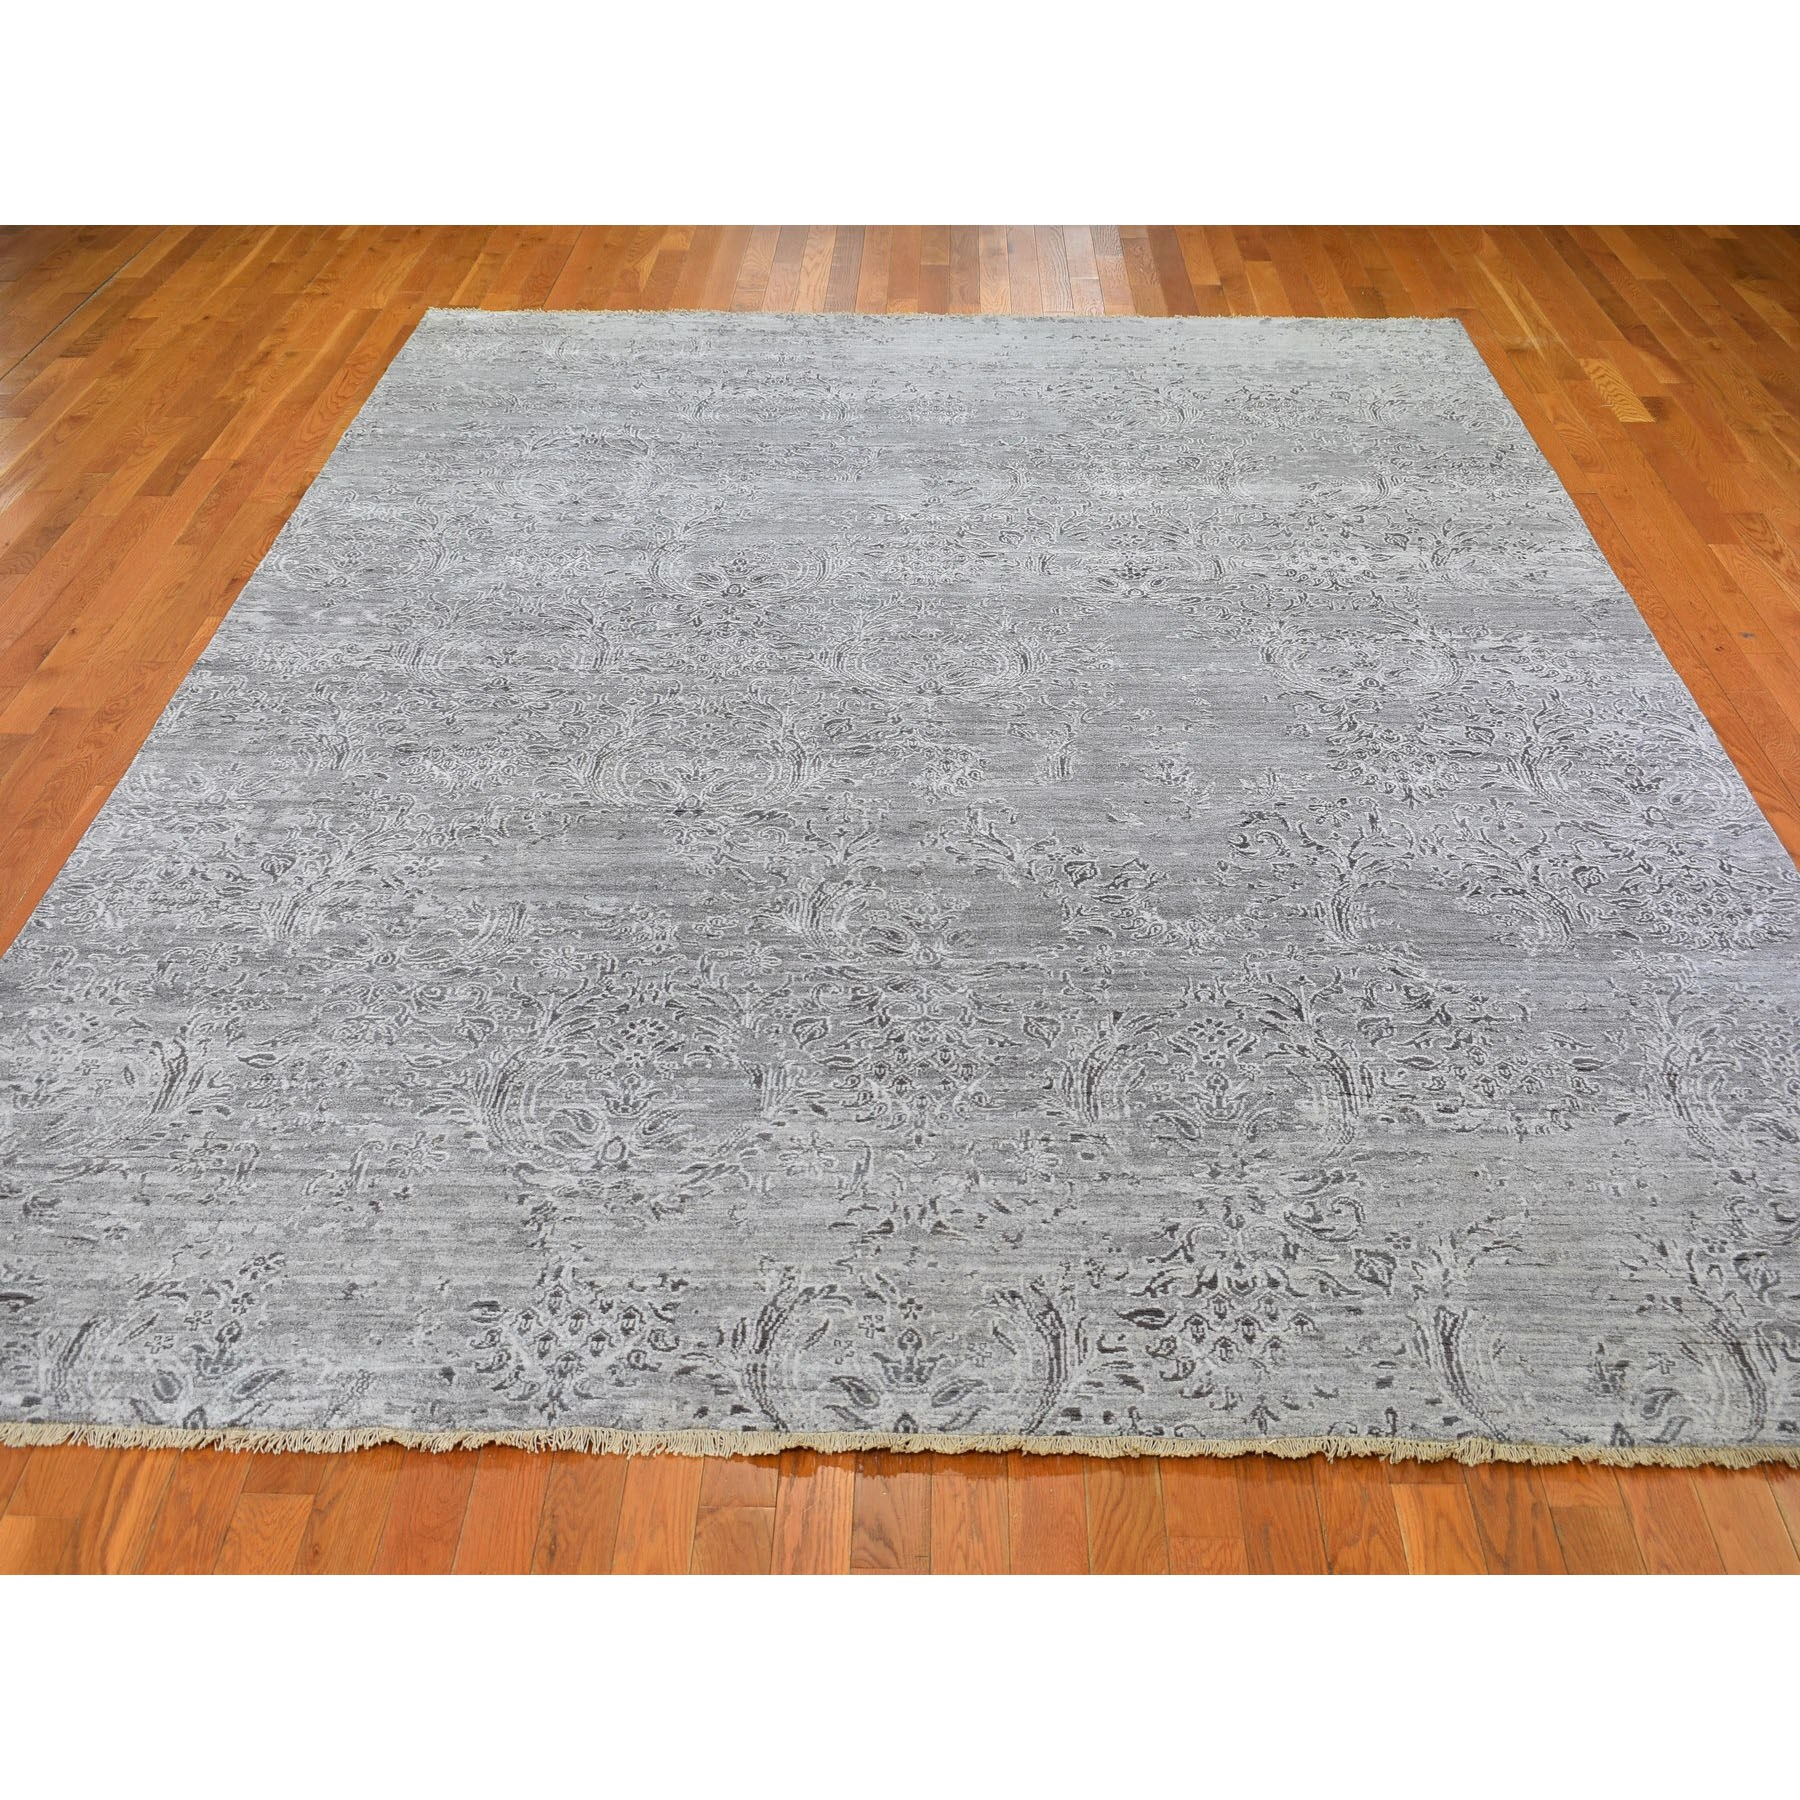 9-x12- Gray Damask Tone On Tone Wool and Silk Hand Knotted Oriental Rug